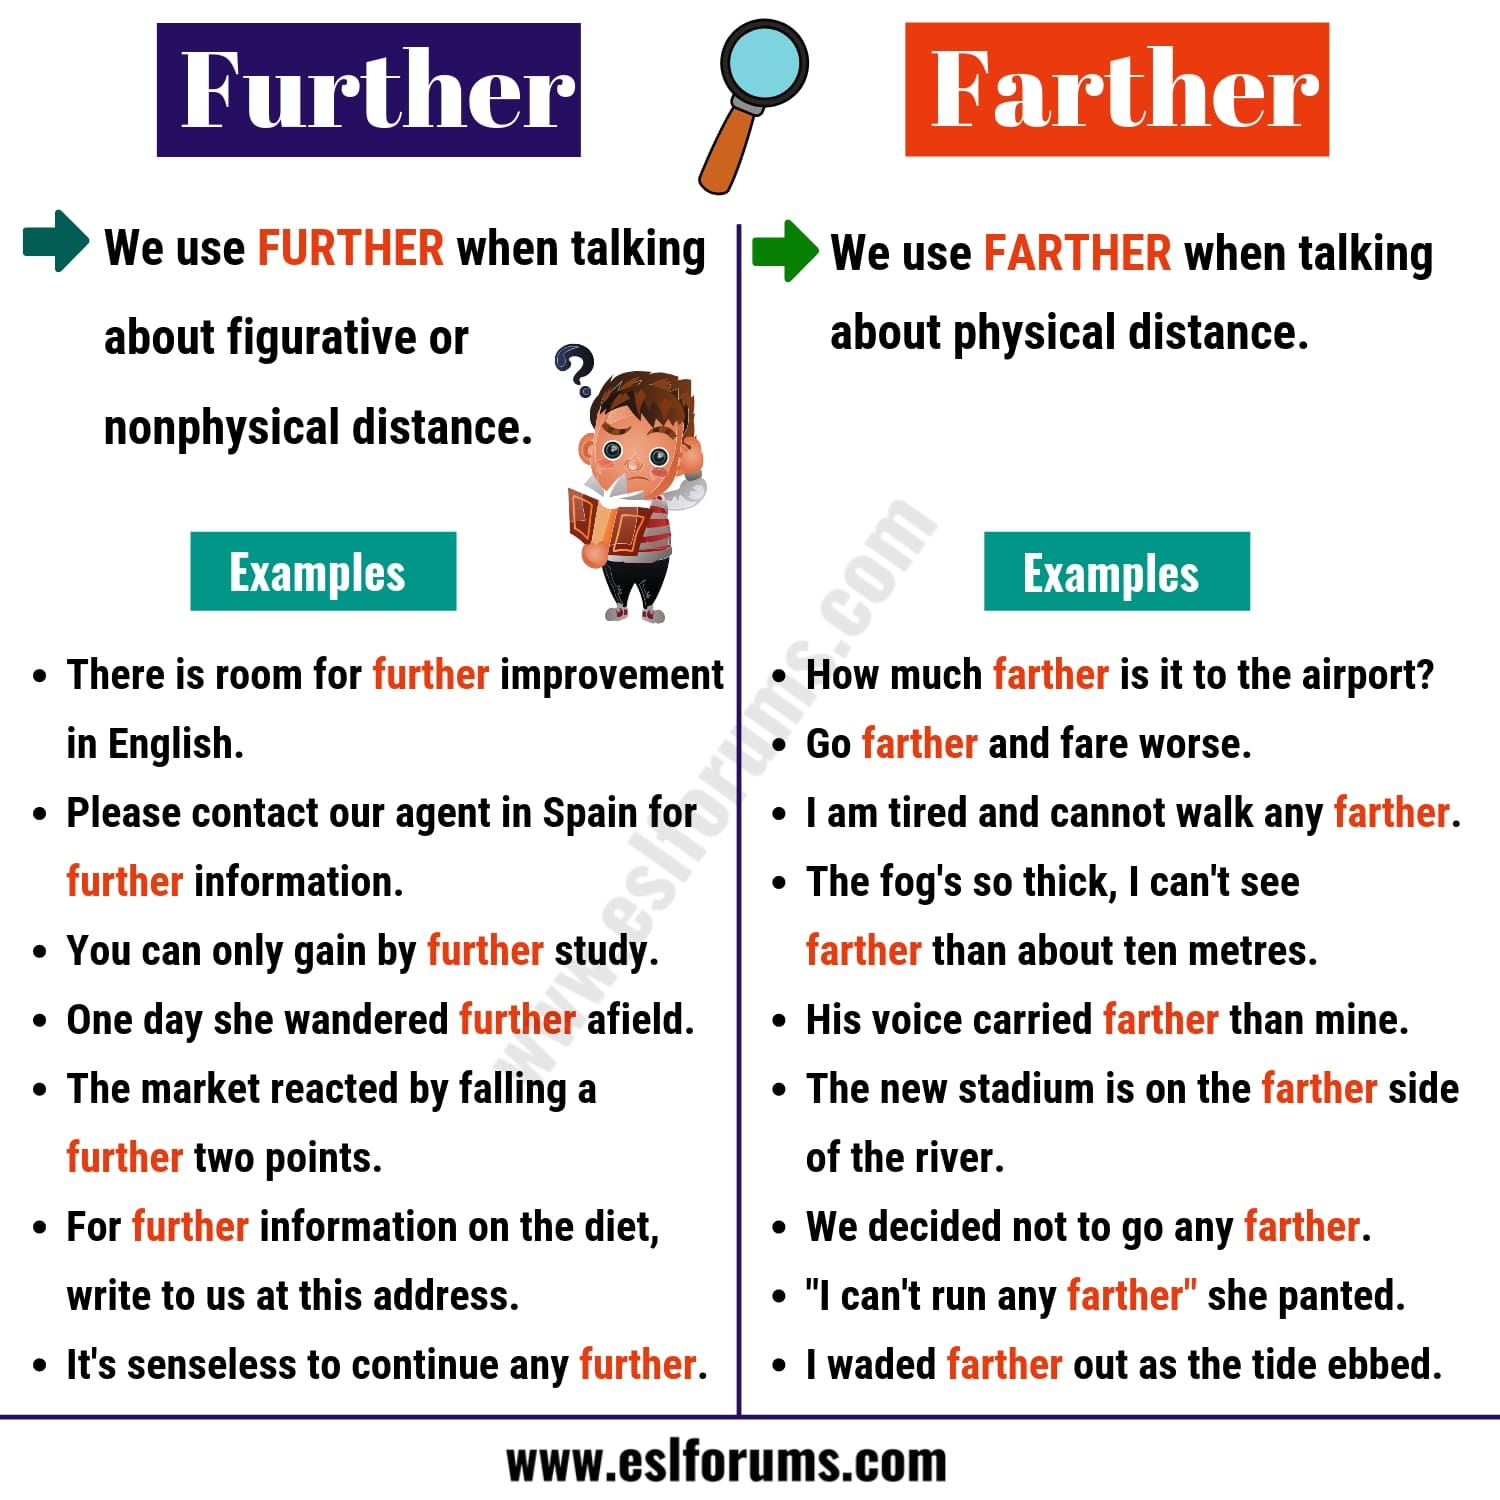 FURTHER vs FARTHER: How to Use Them Correctly?